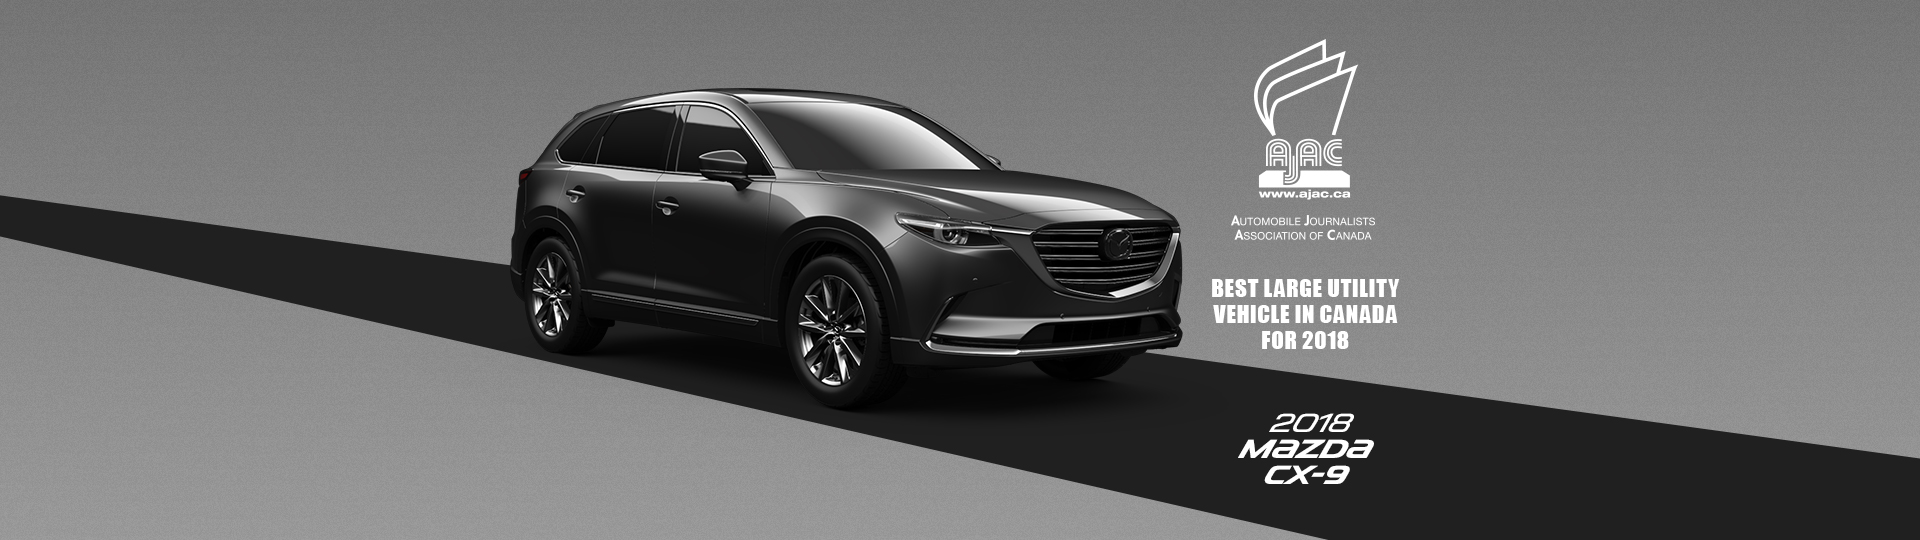 mazda_ajac_1920x540_phase2_feature-page_cx9.ts.1801241927120000